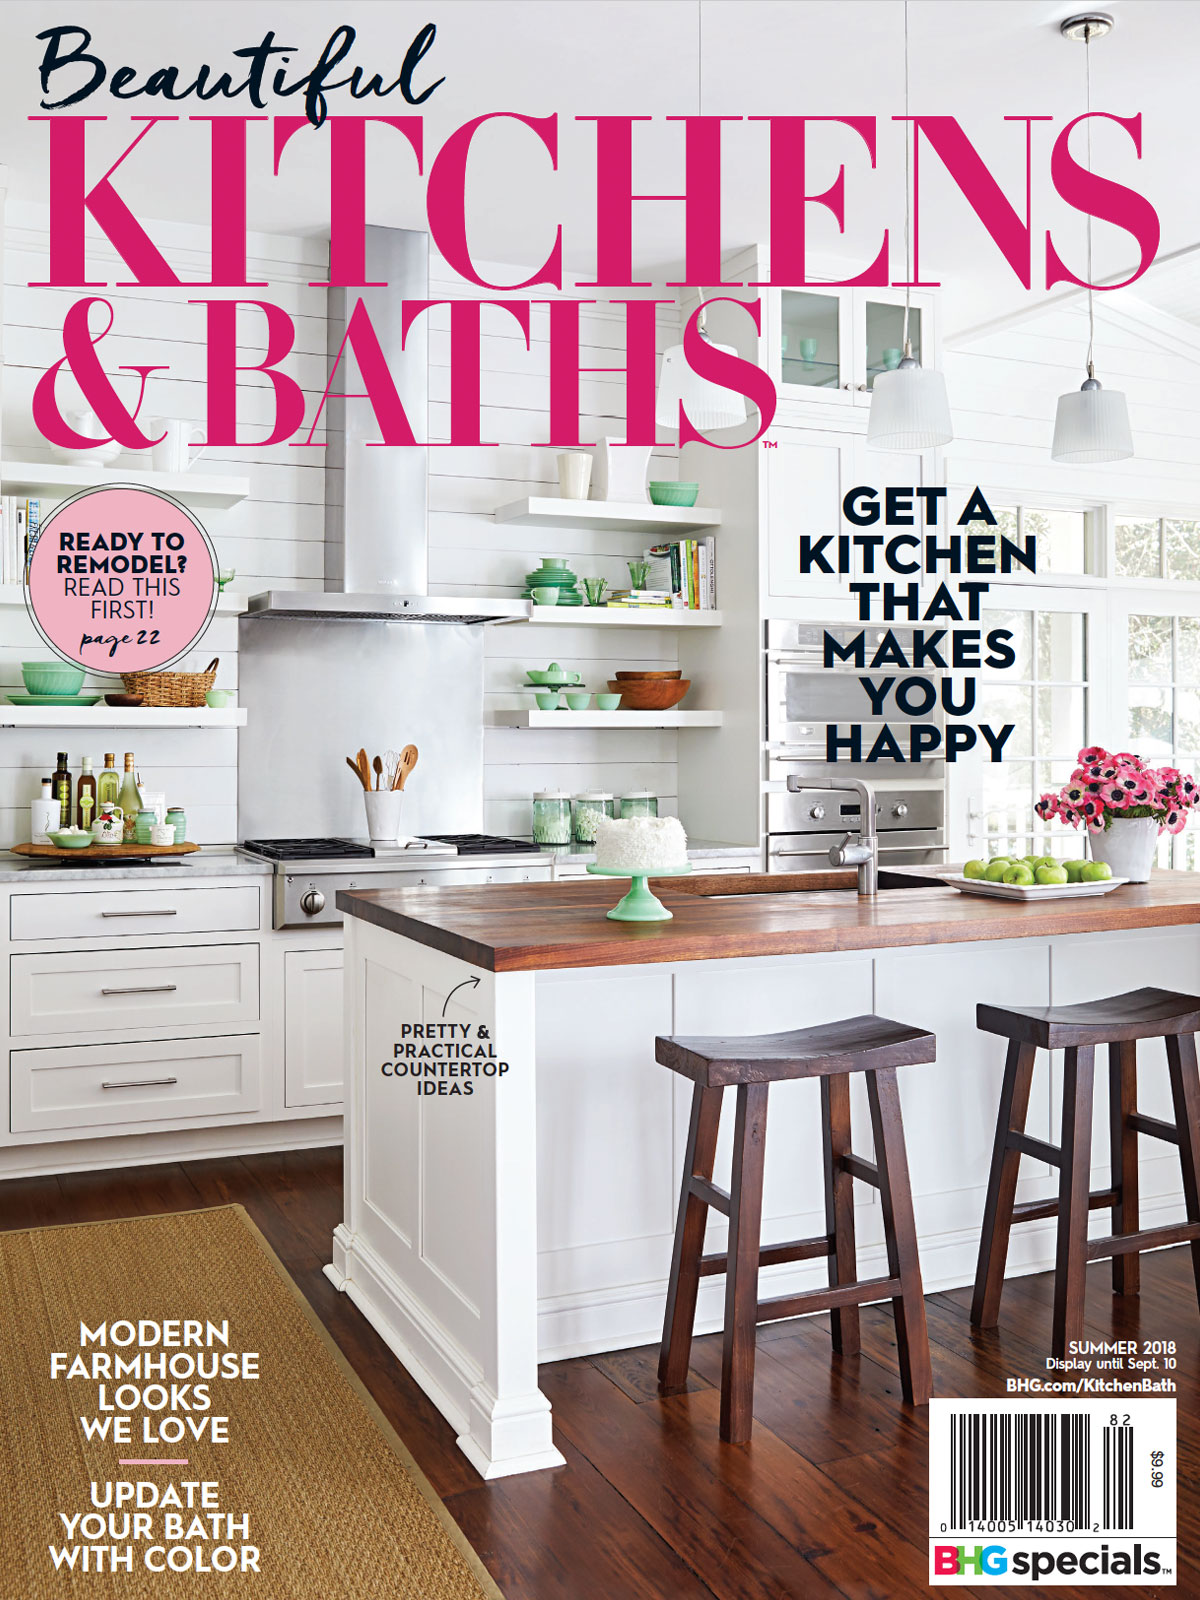 blackband_design_bhg_beautiful_kitchens_baths_cover